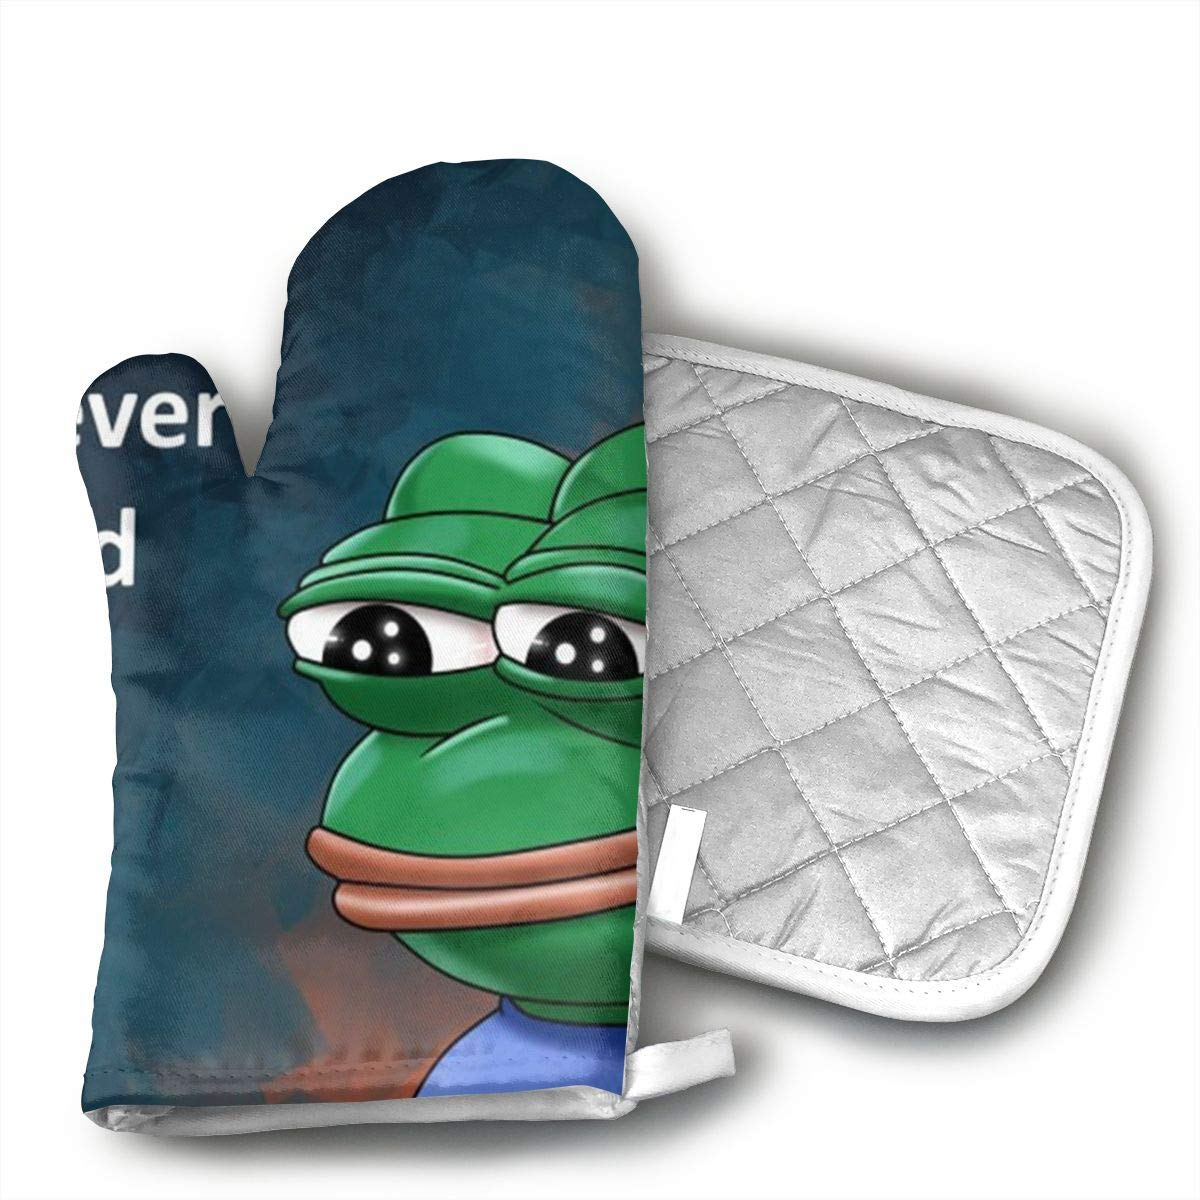 Amazon.com: Niwaww FeelsBadMan Humor Memes Oven Mitts ...